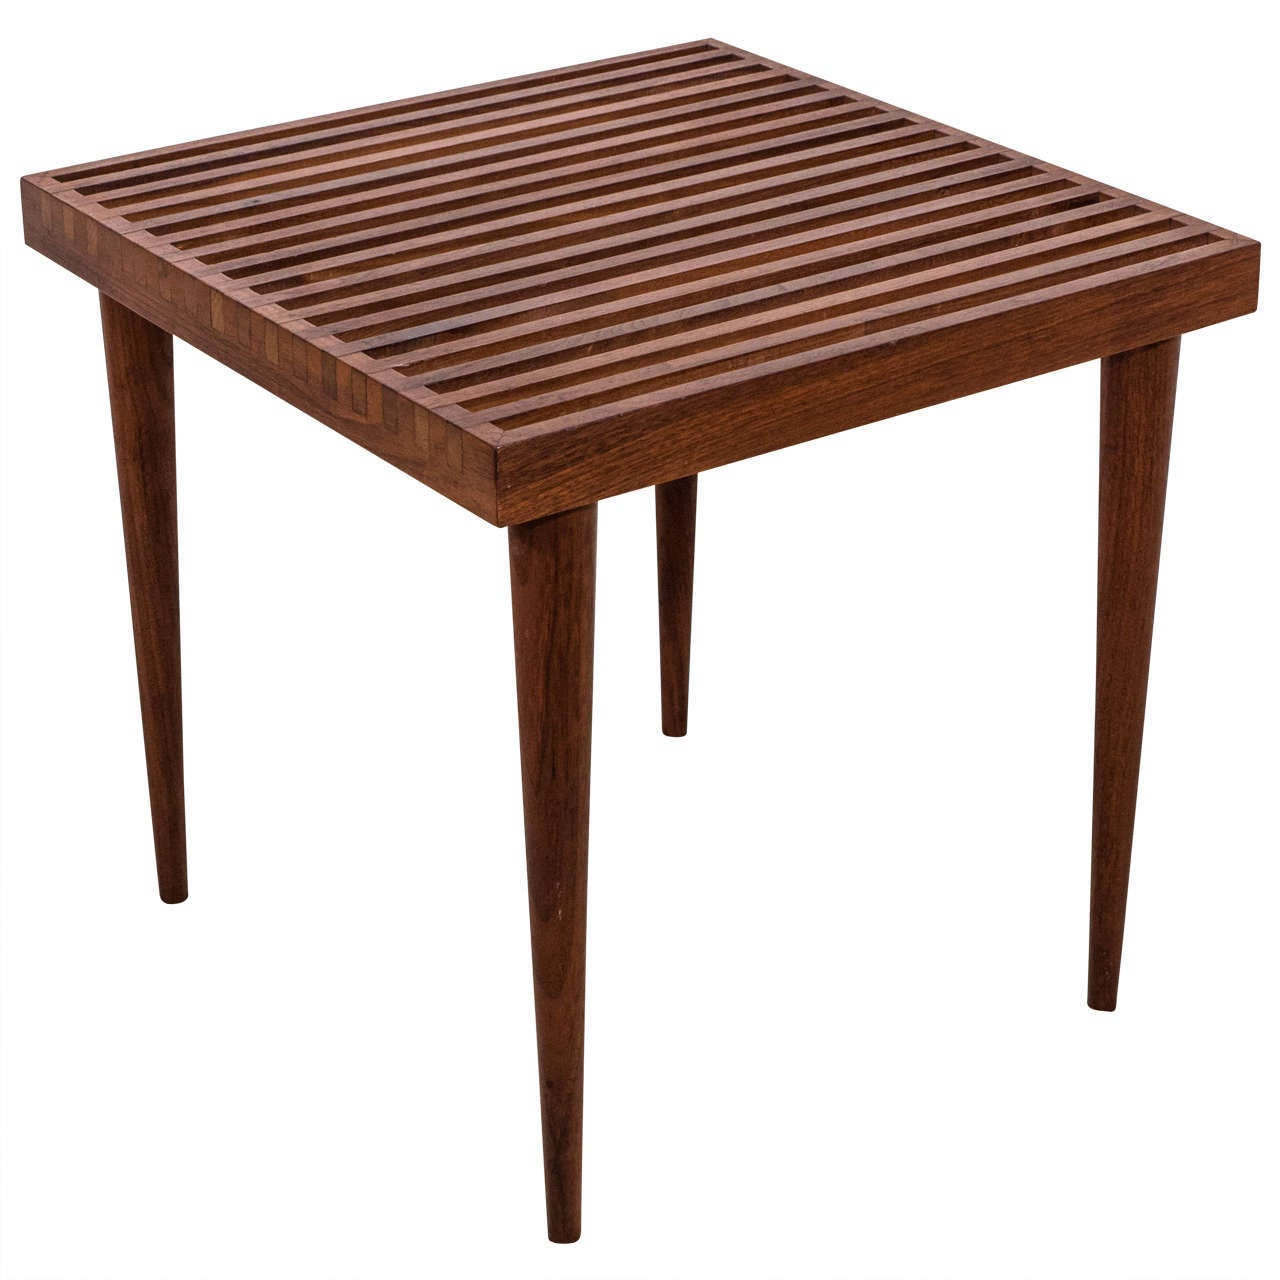 Vintage scandinavian modern slat wood side or end table Modern side table